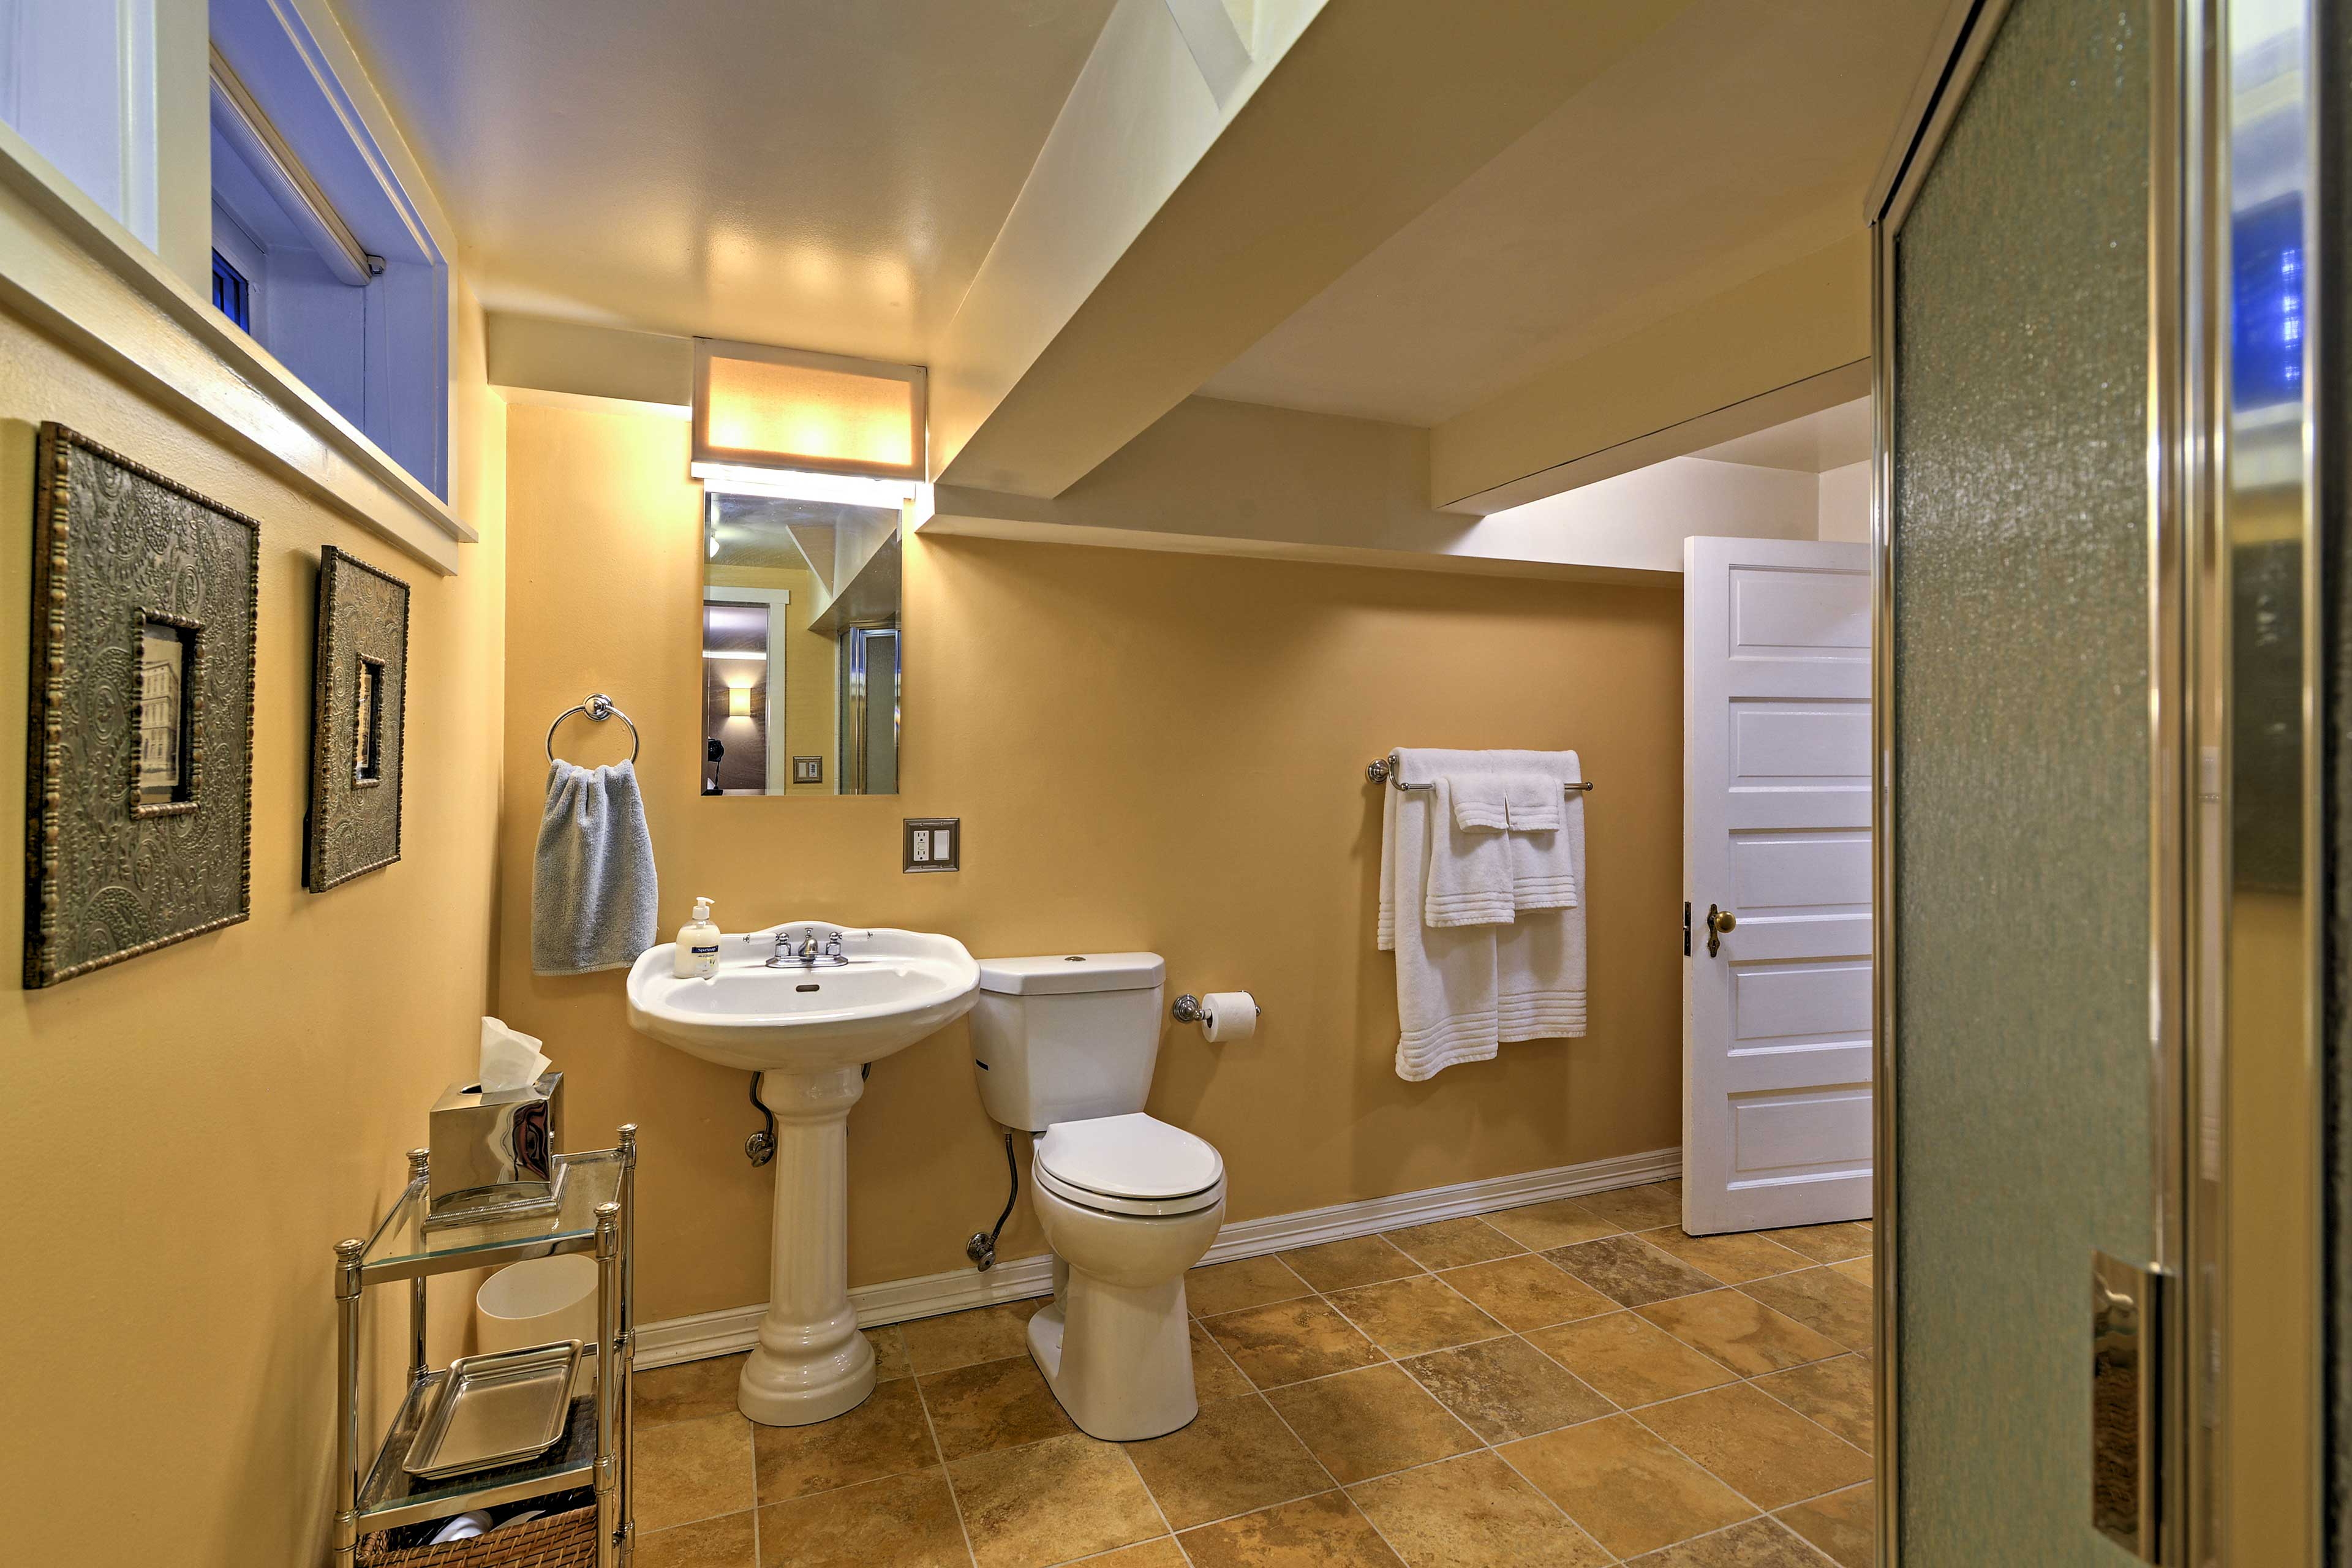 Rinse off in the bathroom with walk-in shower.